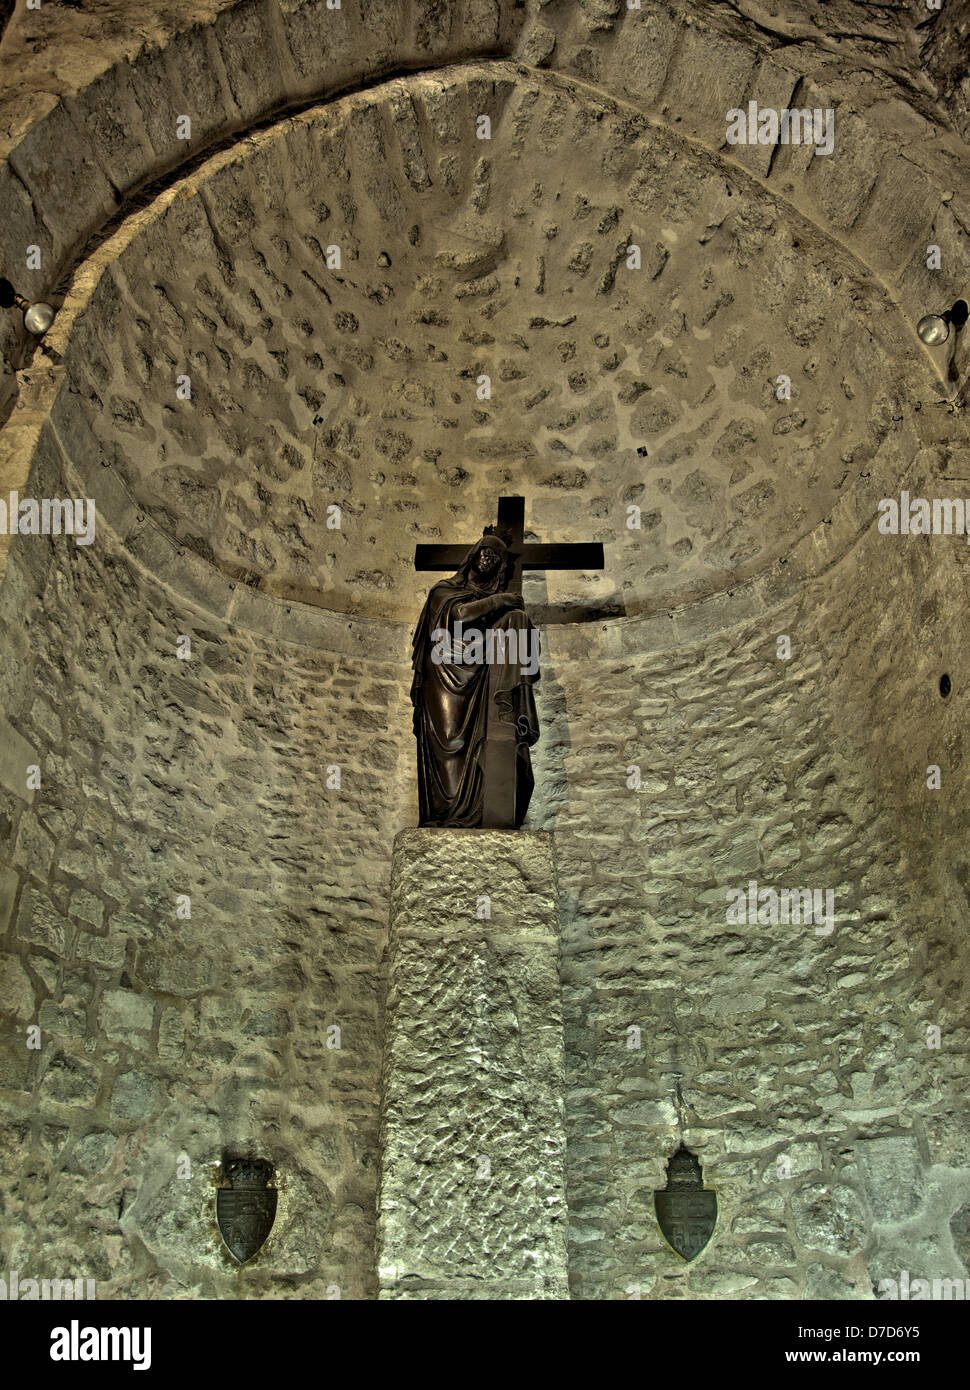 An altar in the Church of the Holy Sepulchre depicting Maria Magdalene holding the cross. - Stock Image